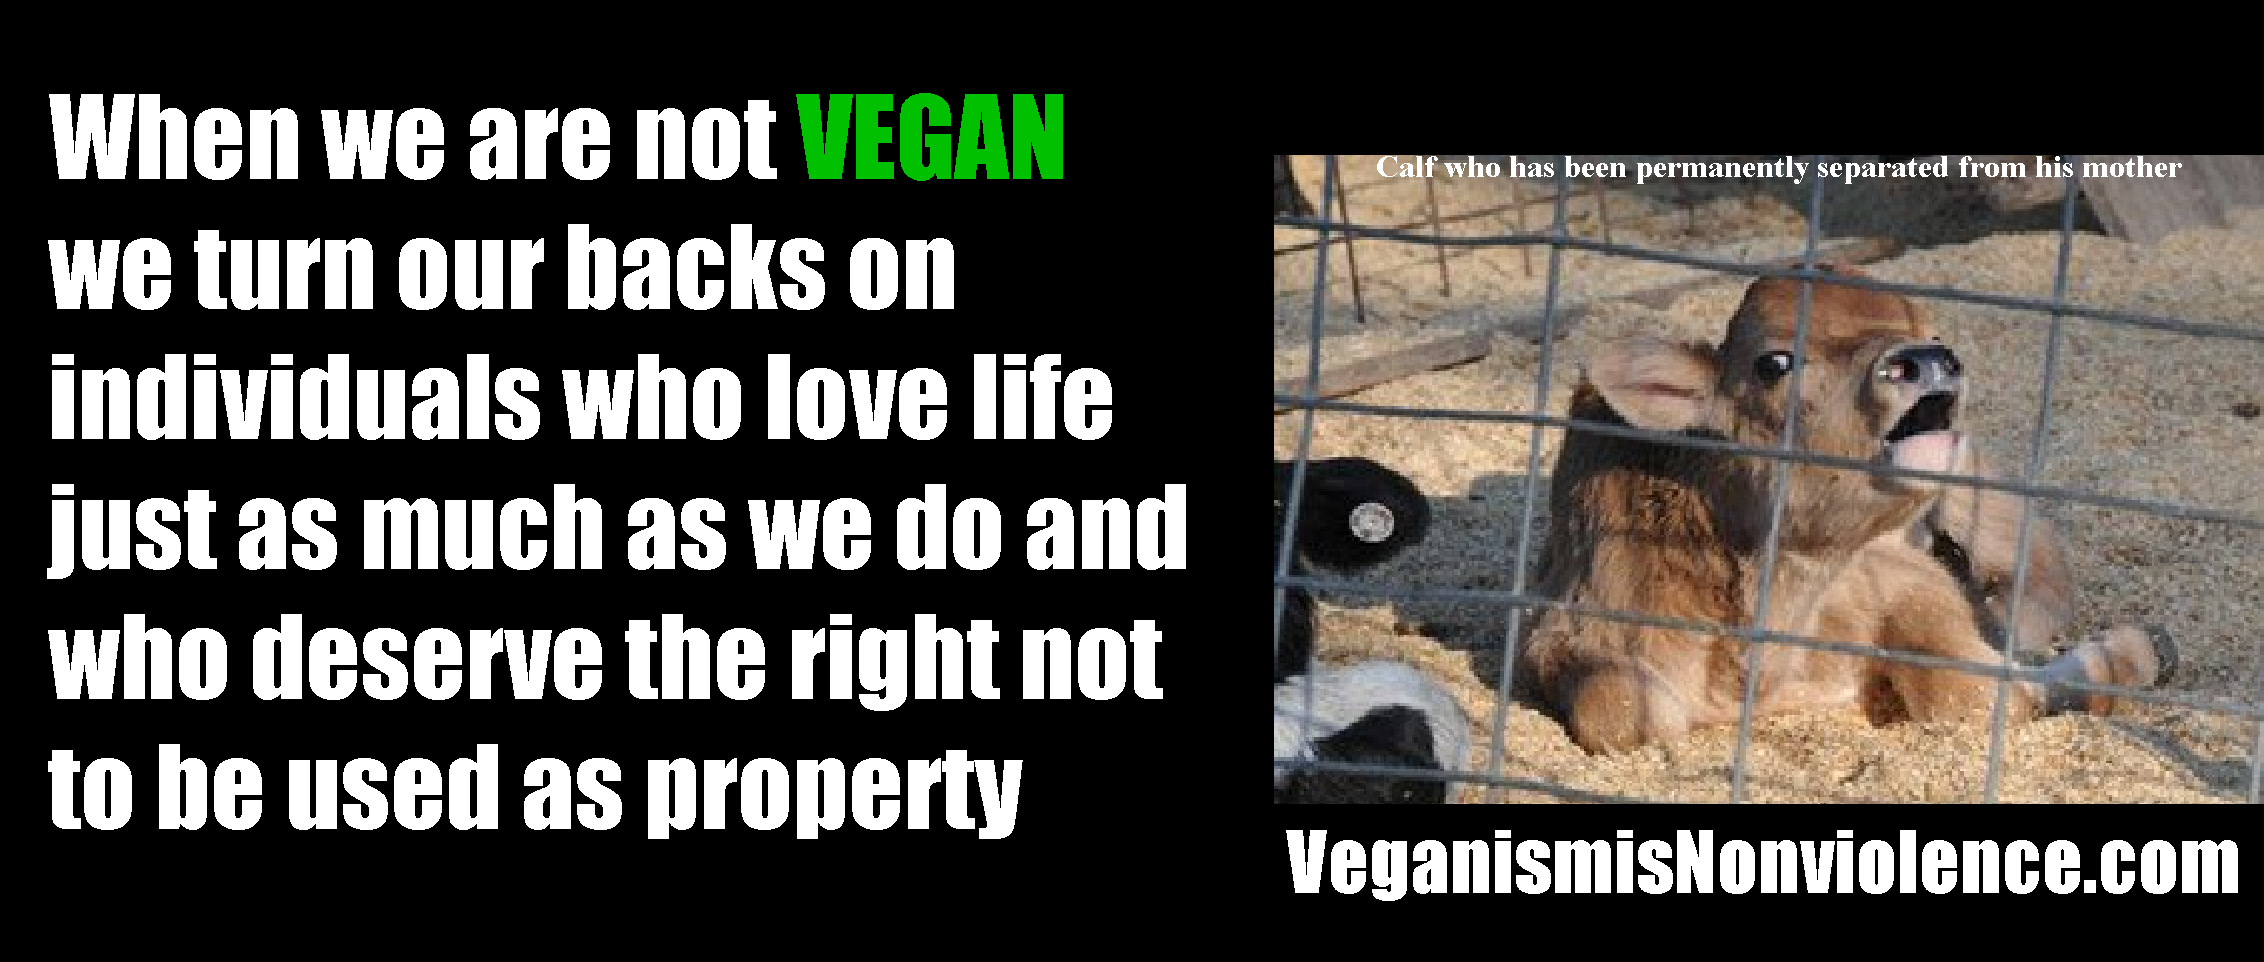 Animal Rights Quotes The Animal Rights Action Site Chooseveg A Great Resource For